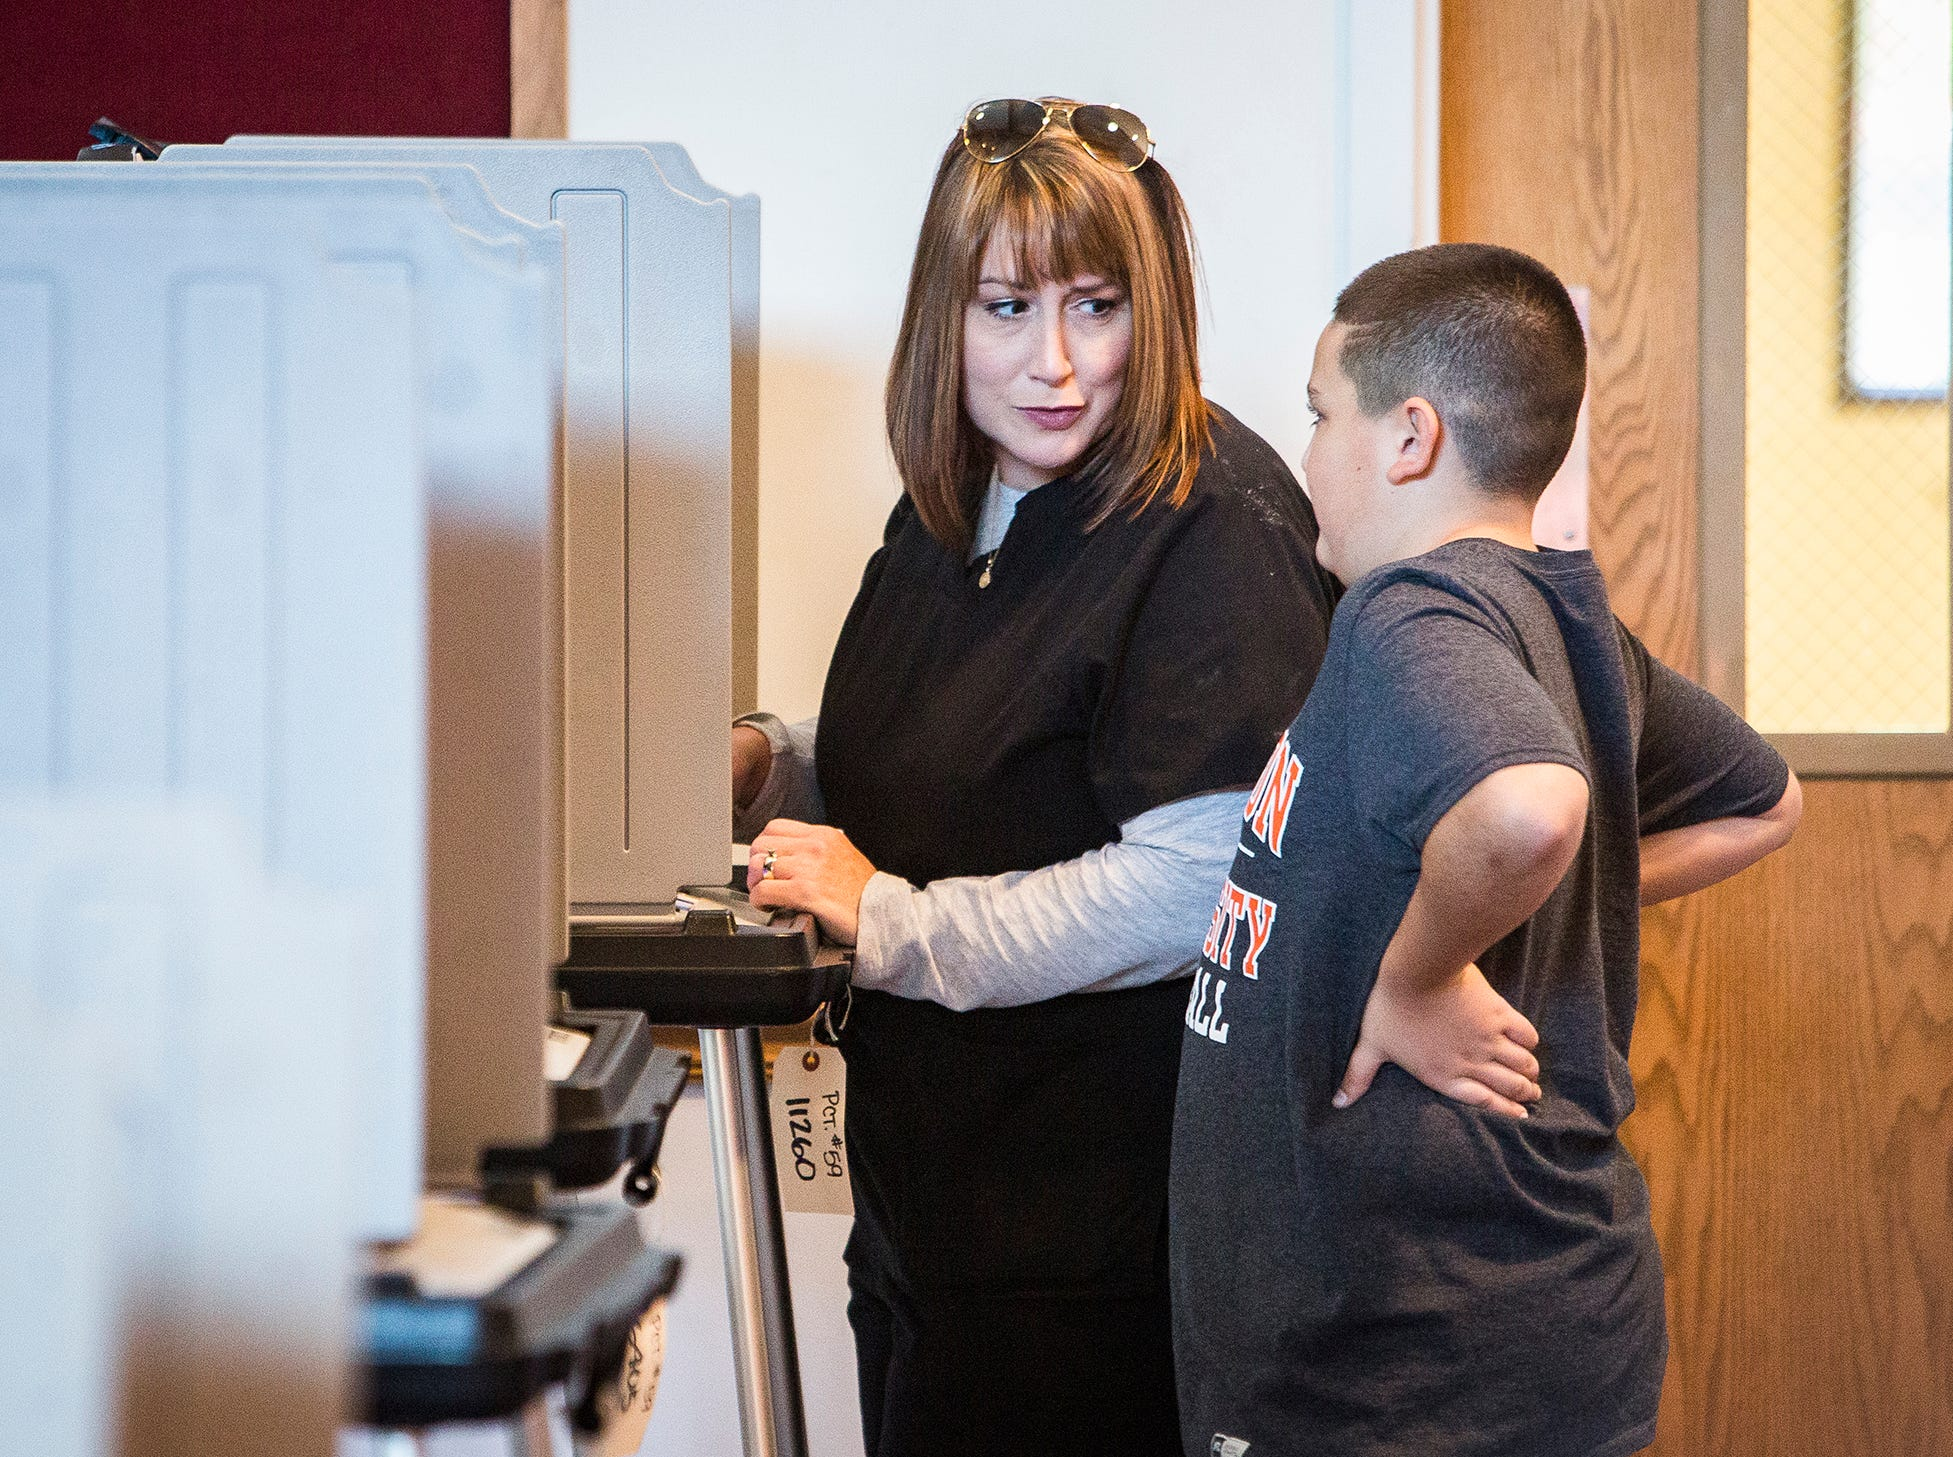 Jennifer Horton casts her vote accompanied by her son, Aiden Branch, at Cornerstone Brethren Church Tuesday.